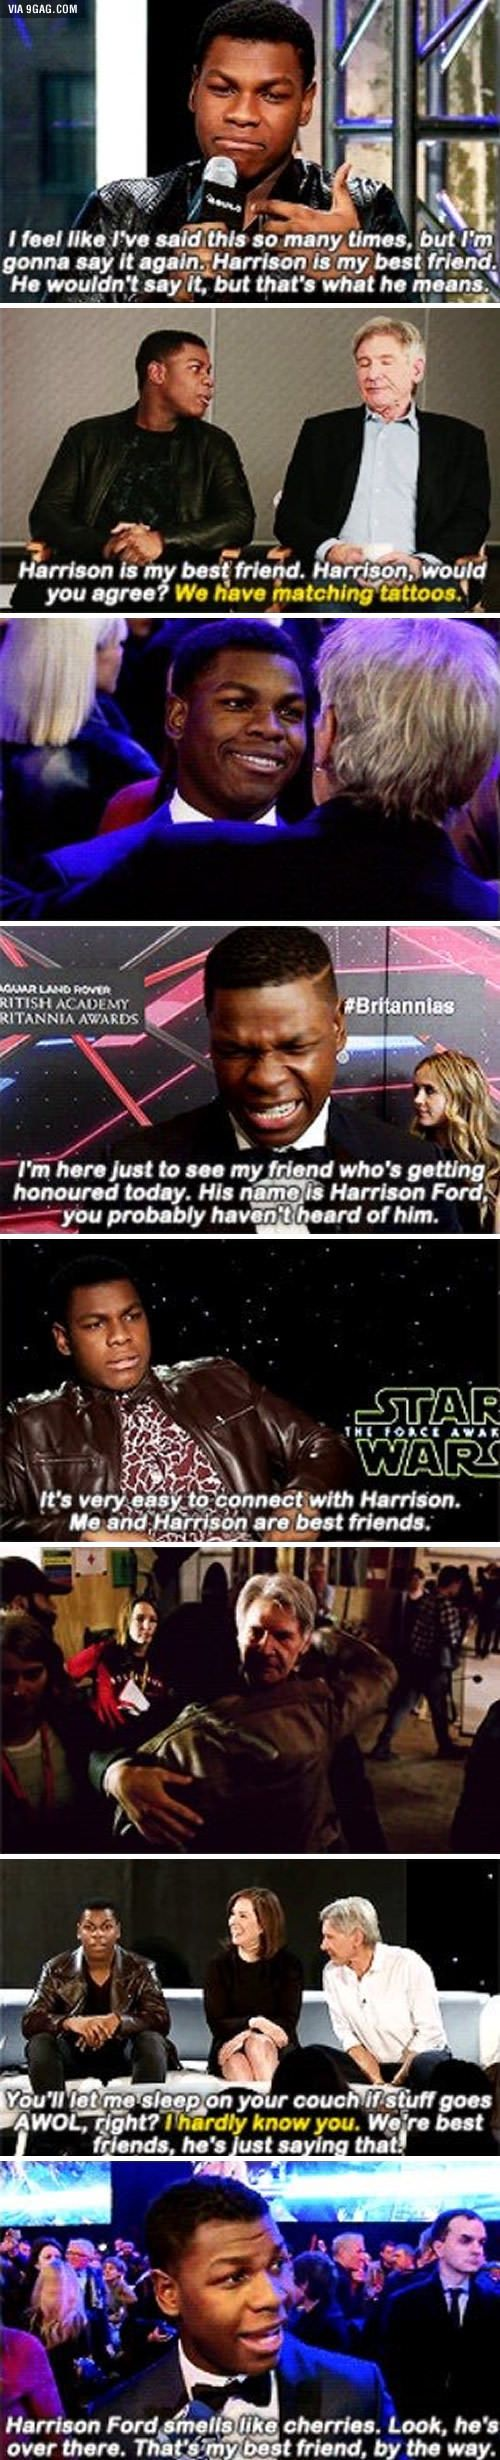 John Boyega seems to like Harisson Ford